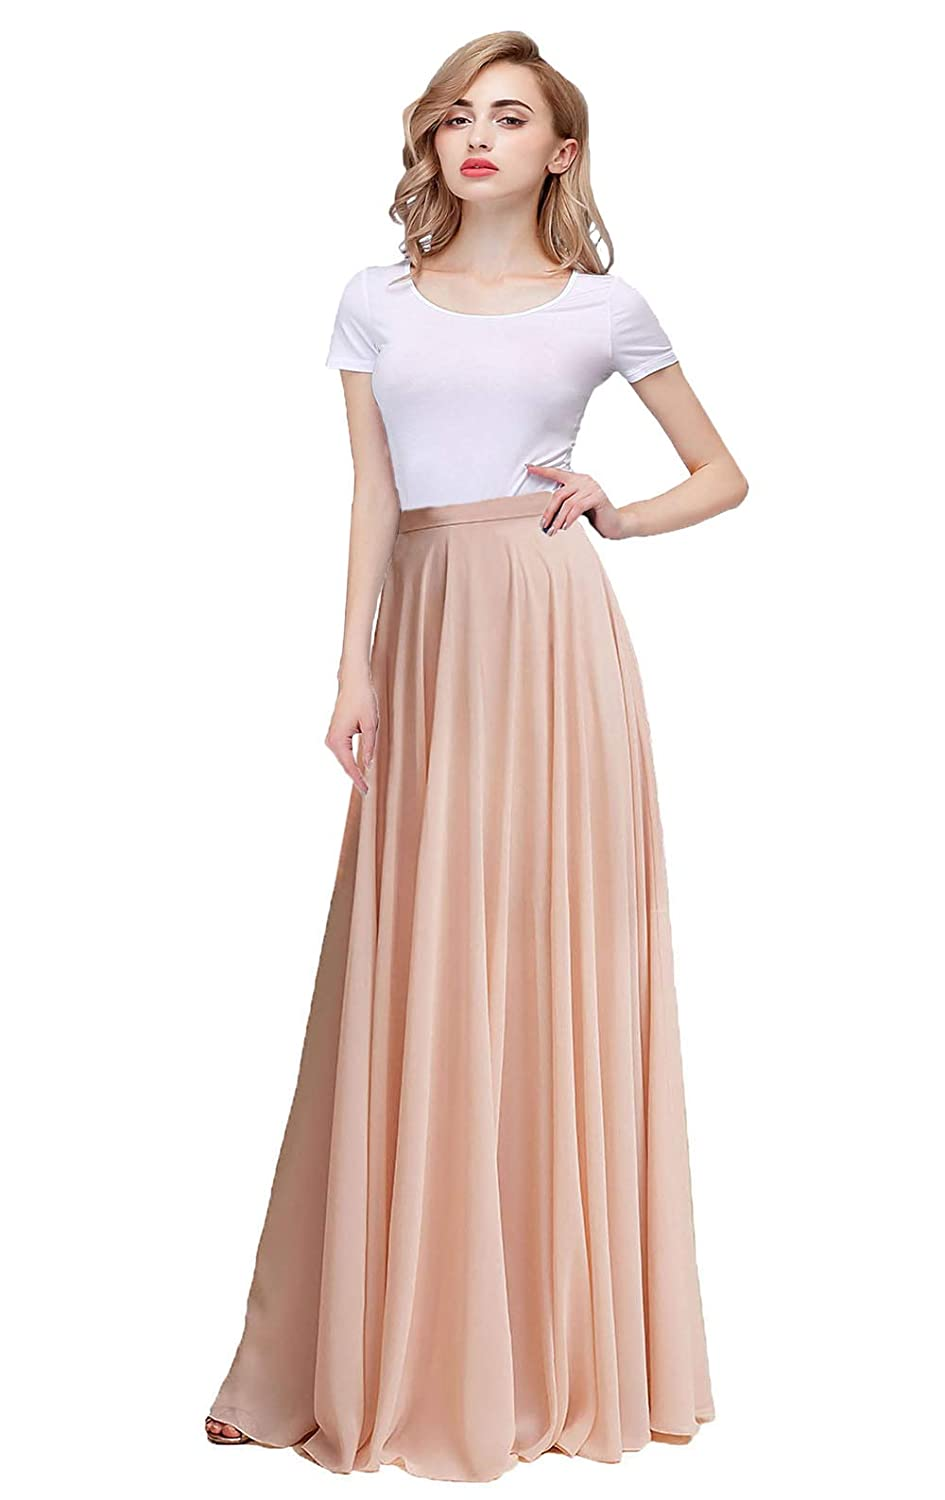 83e8a93d71 Our skirt is stretched waistline, the waist size is S:25-27, M:27-29.5,  L:29.5-32.5, XL:32.5-34.5 and the skirt length ...